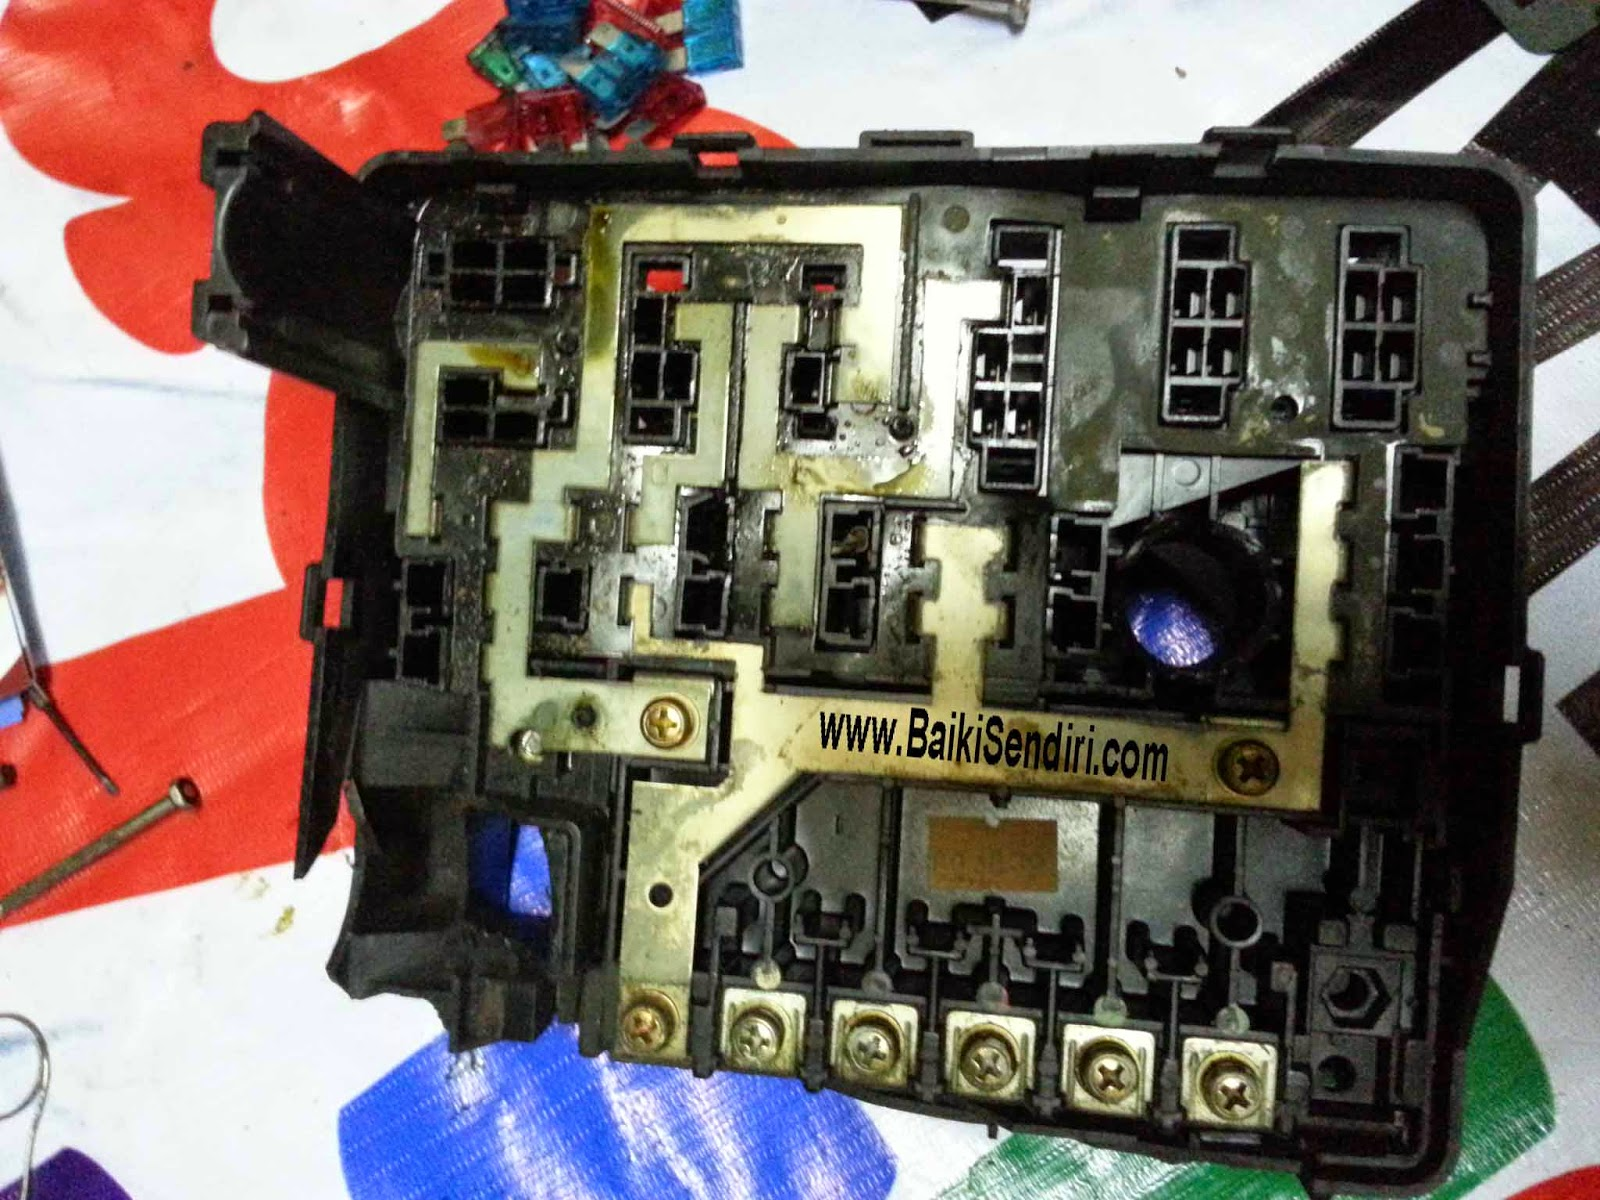 Diy Fix On Your Own Honda B20a Fuse Box Replacement How Looks The Since There Is 2 3 Same Color Code Or Similar